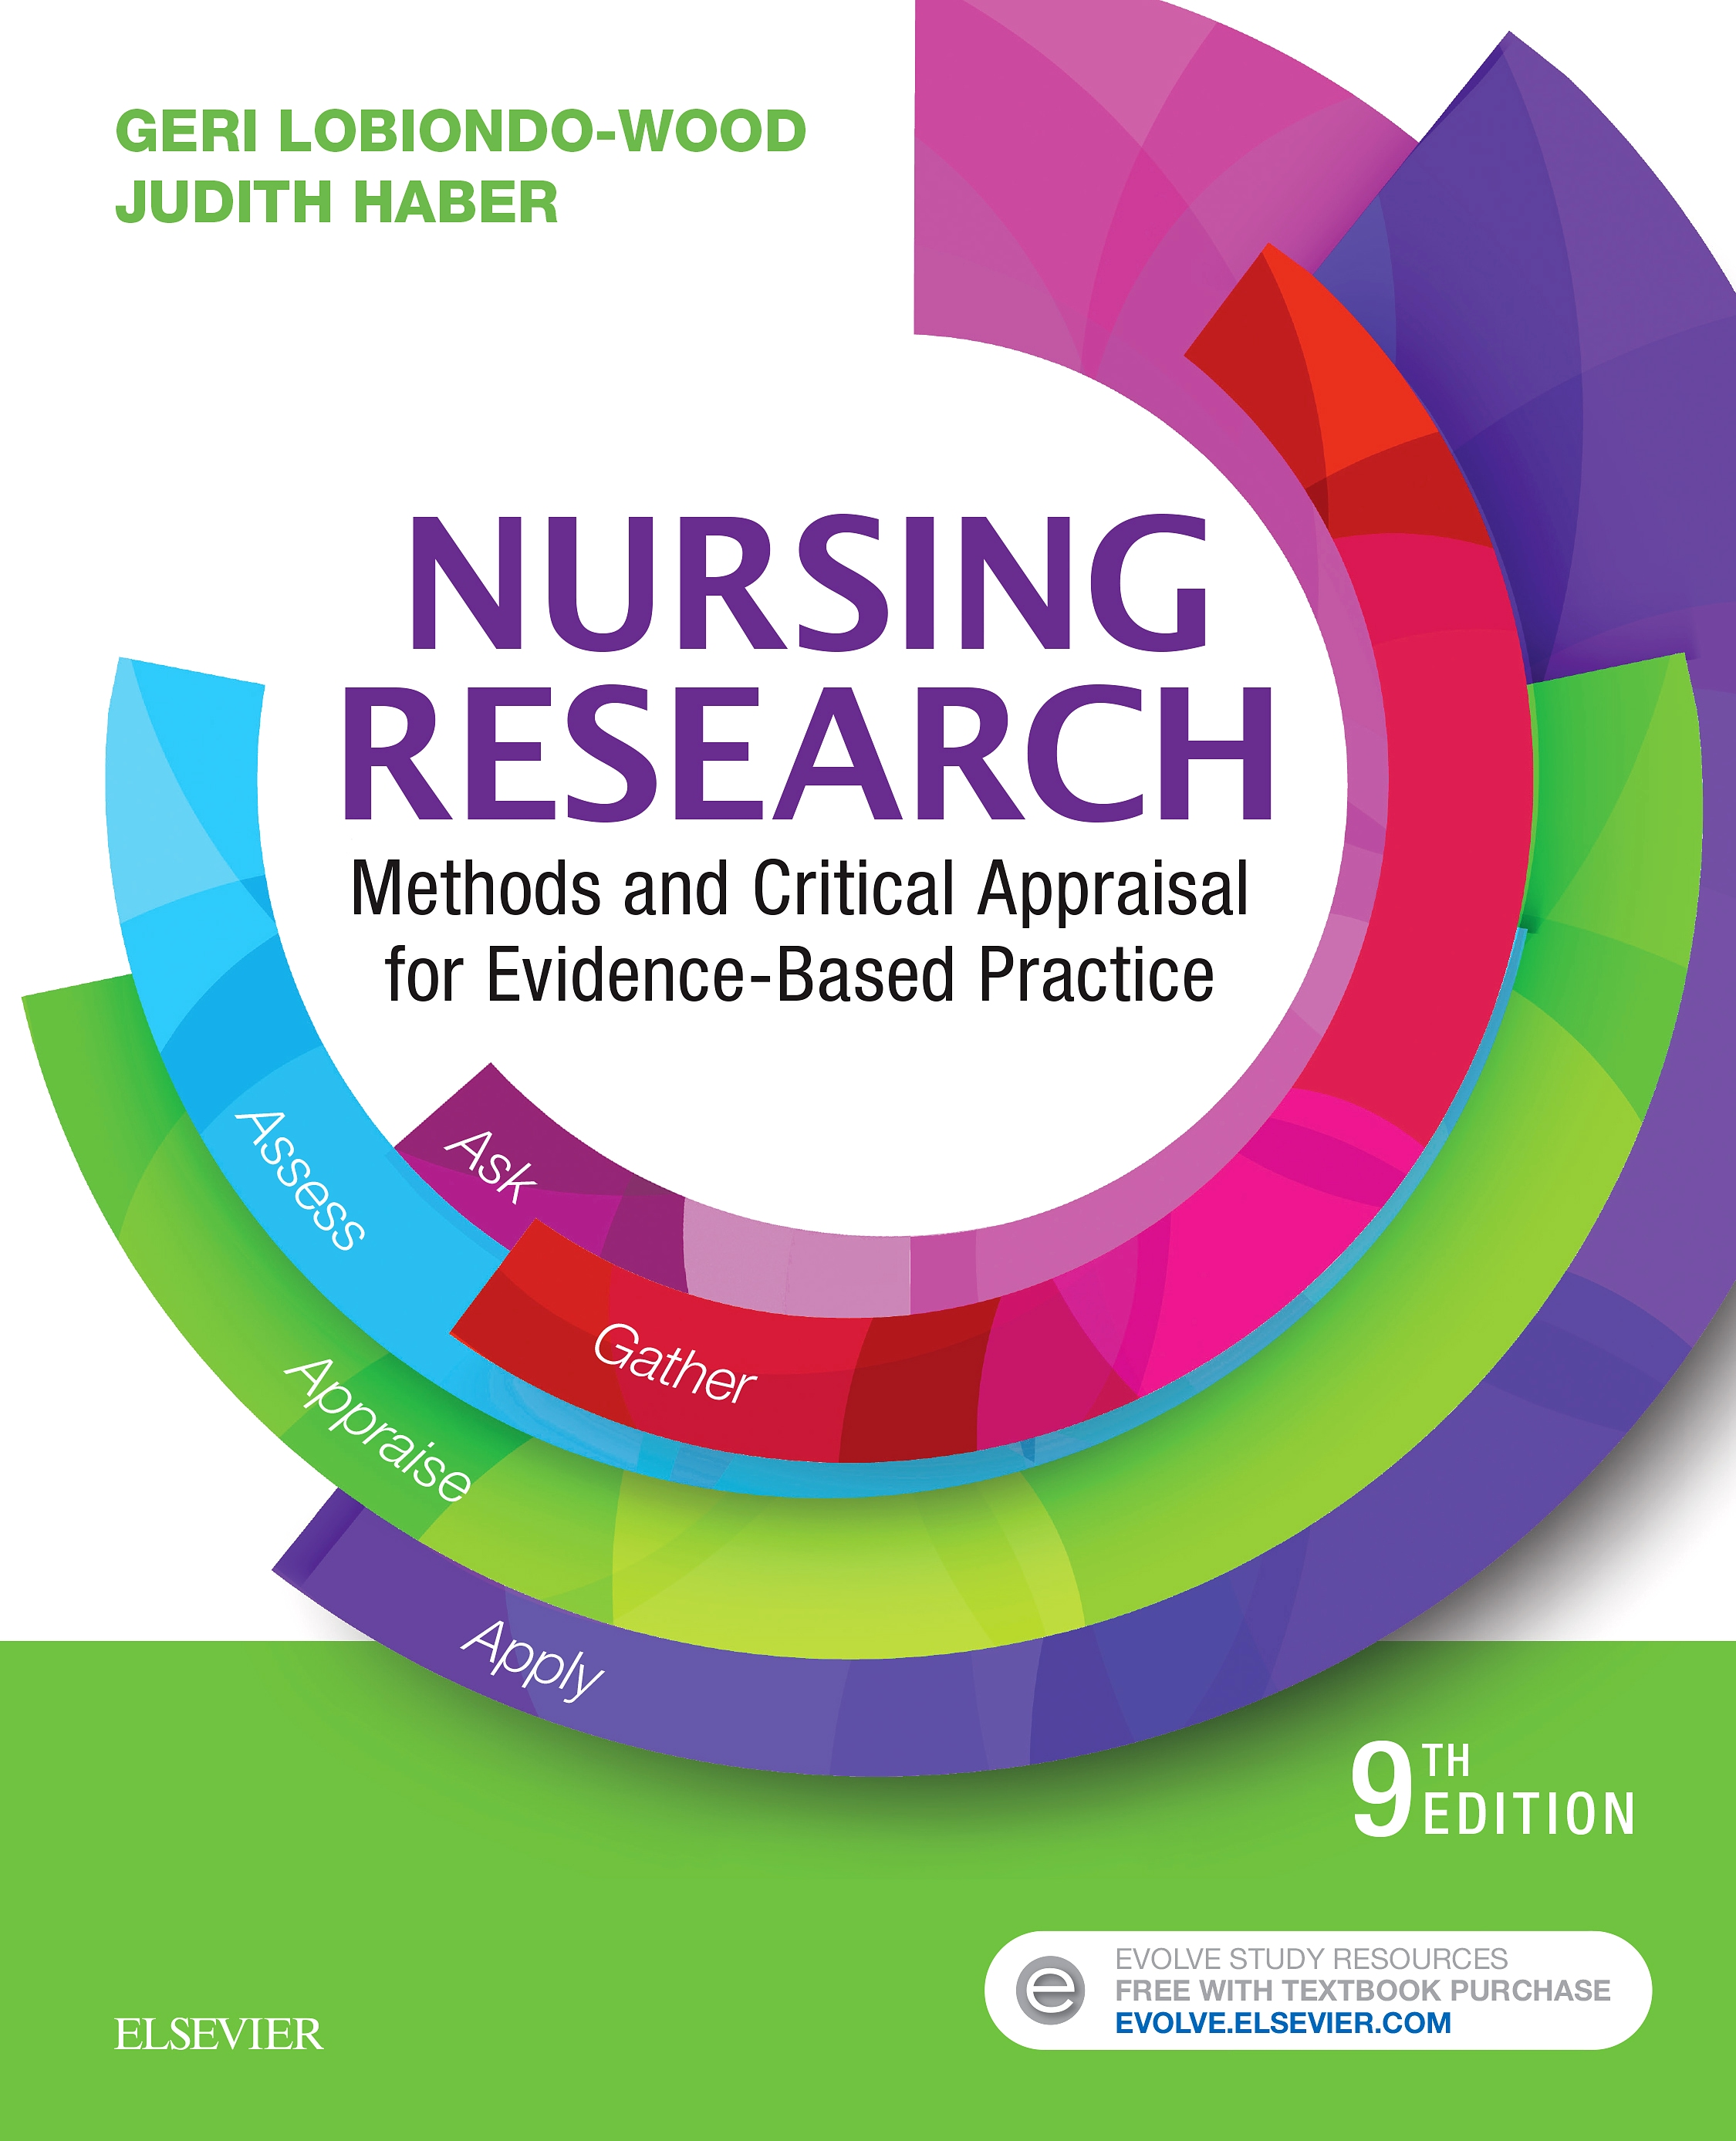 Evolve Resources for Nursing Research, 9th Edition